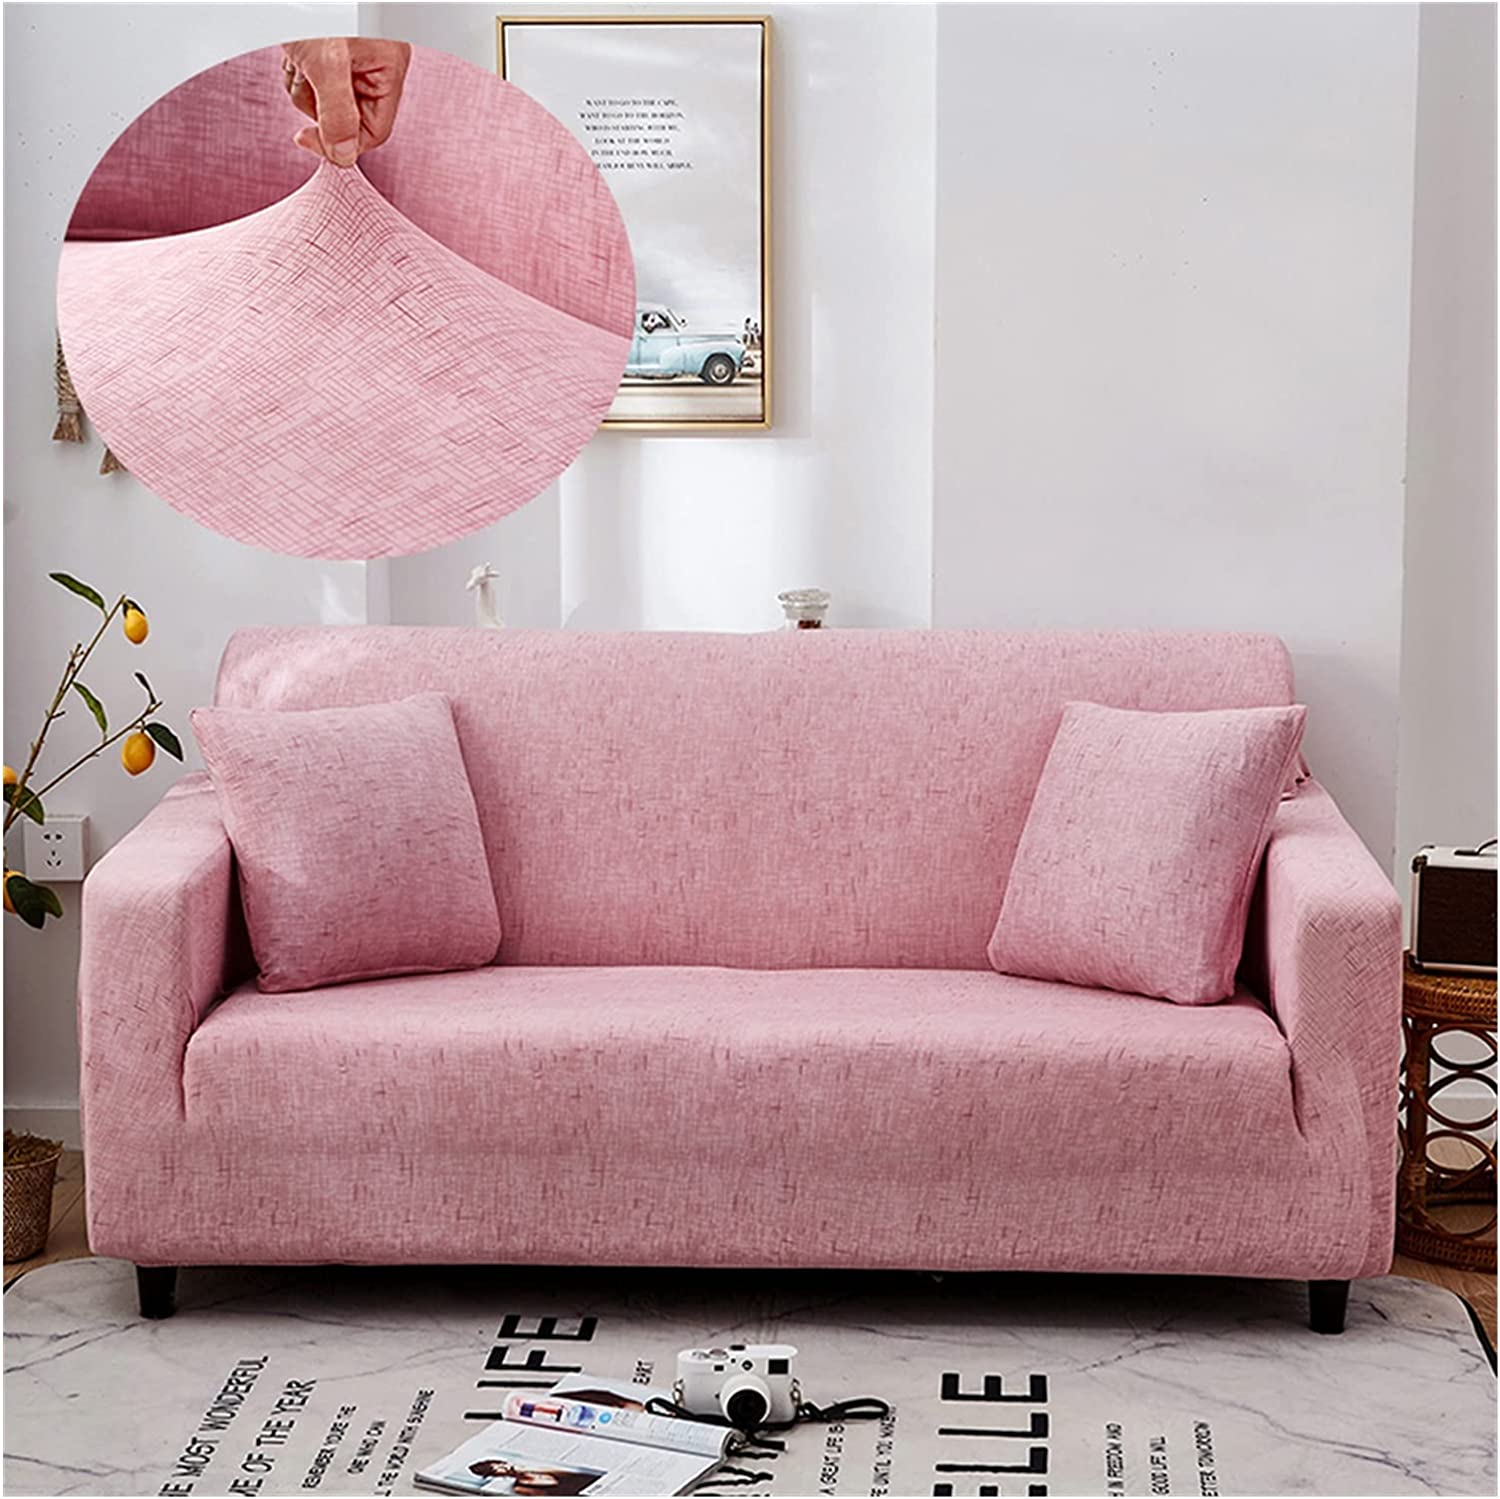 SADDPA New Orleans Mall Cross Pattern Elastic Sofa Dedication Covers for Cover Stretch